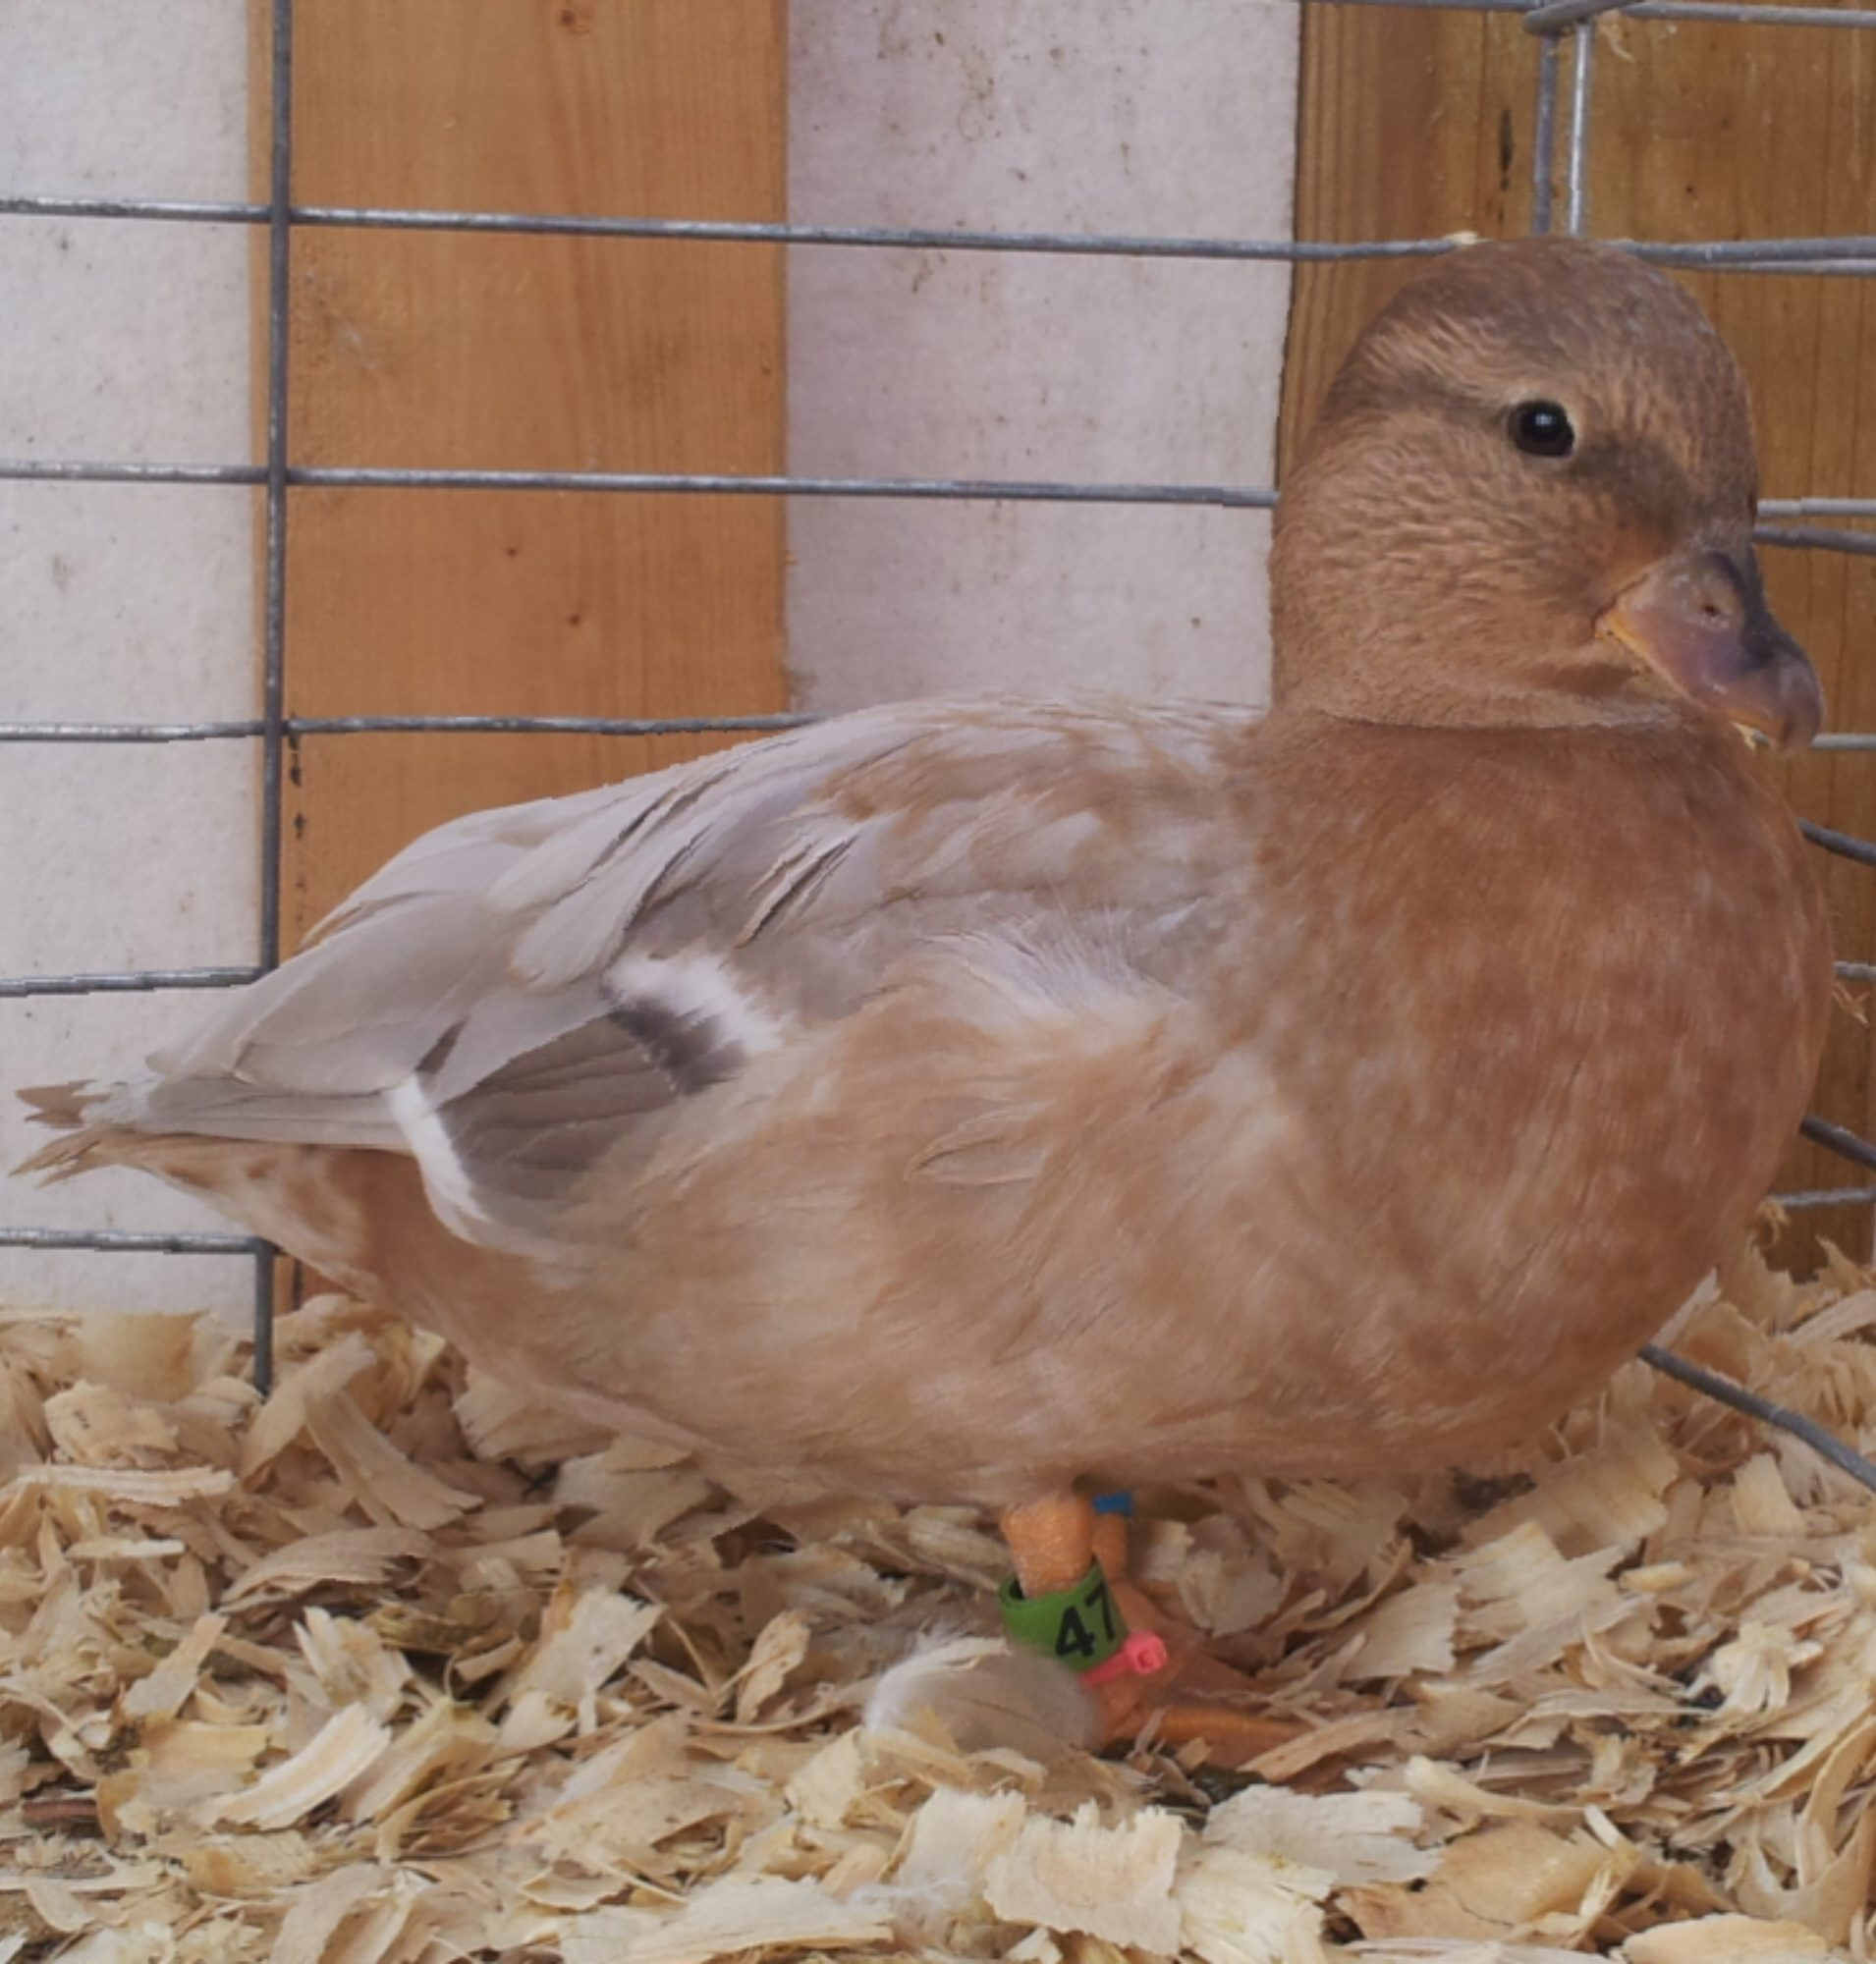 briarpatchfarms's photos in Da' Cute and Cuddly Call Duck thread!